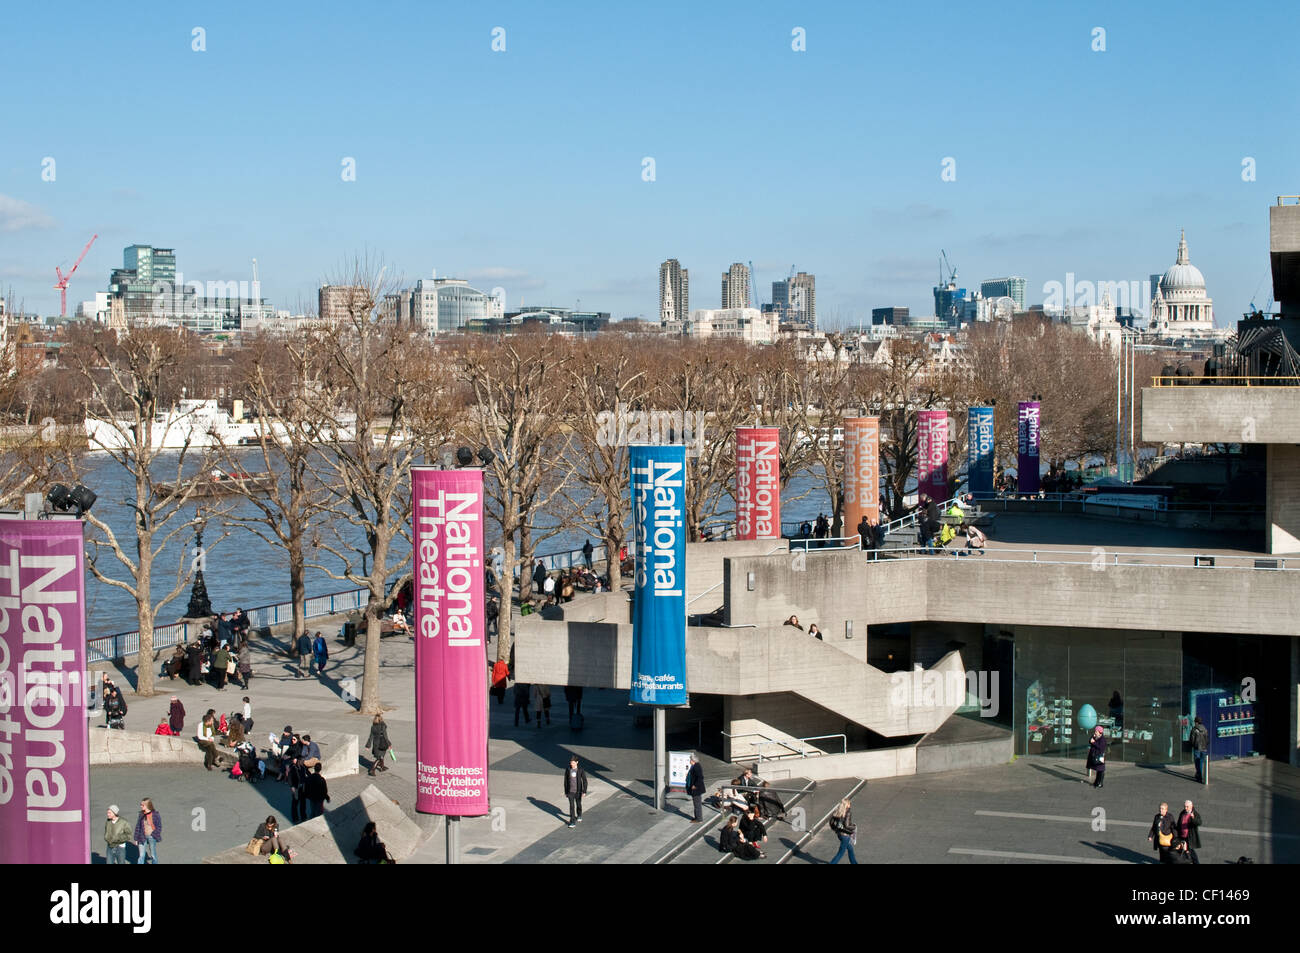 National Theatre banners, South Bank Centre, London, UK - Stock Image